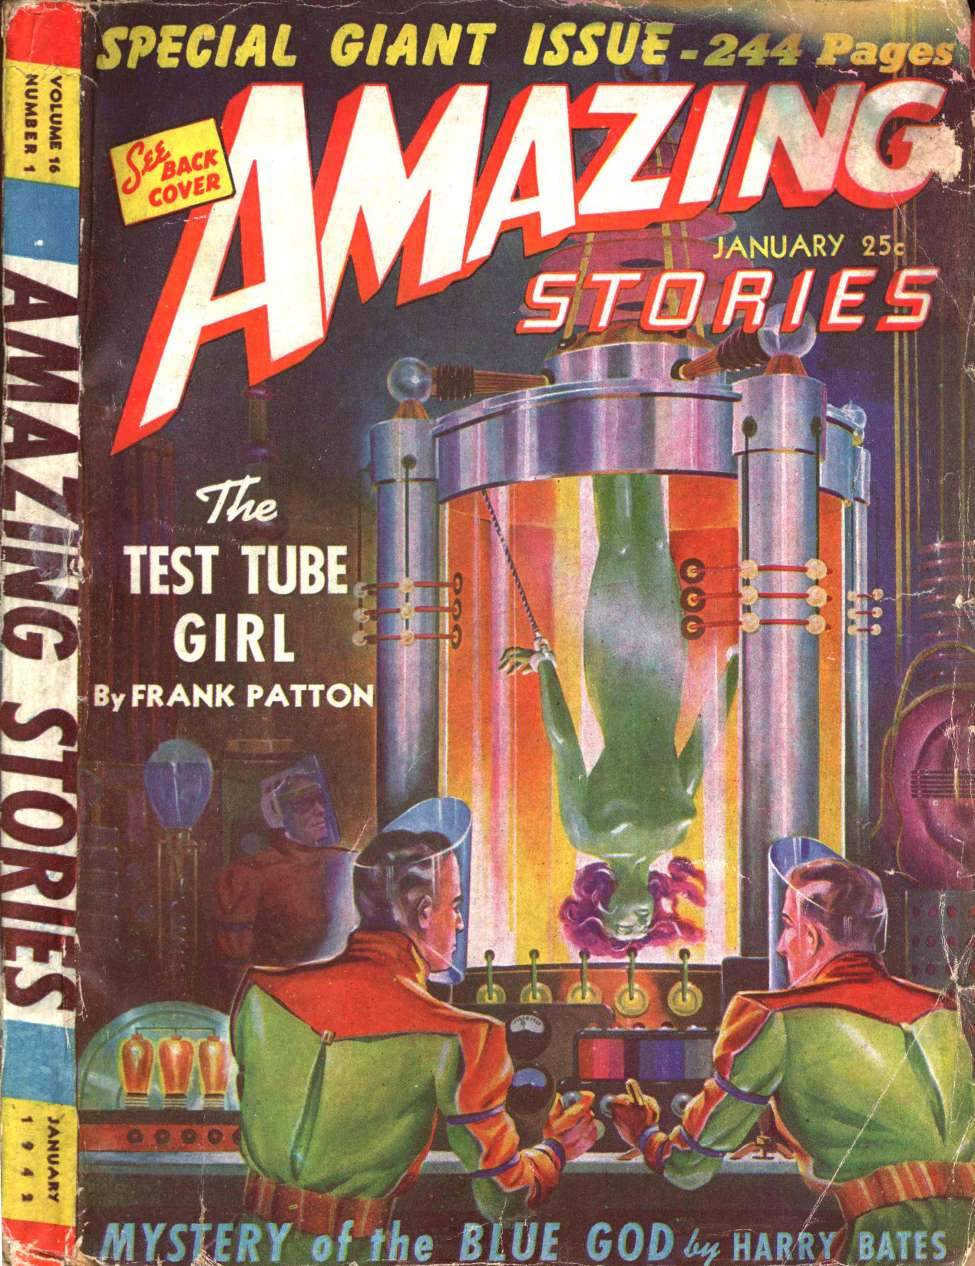 Comic Book Cover For Amazing Stories v16 01 - The Test Tube Girl - Frank Patton